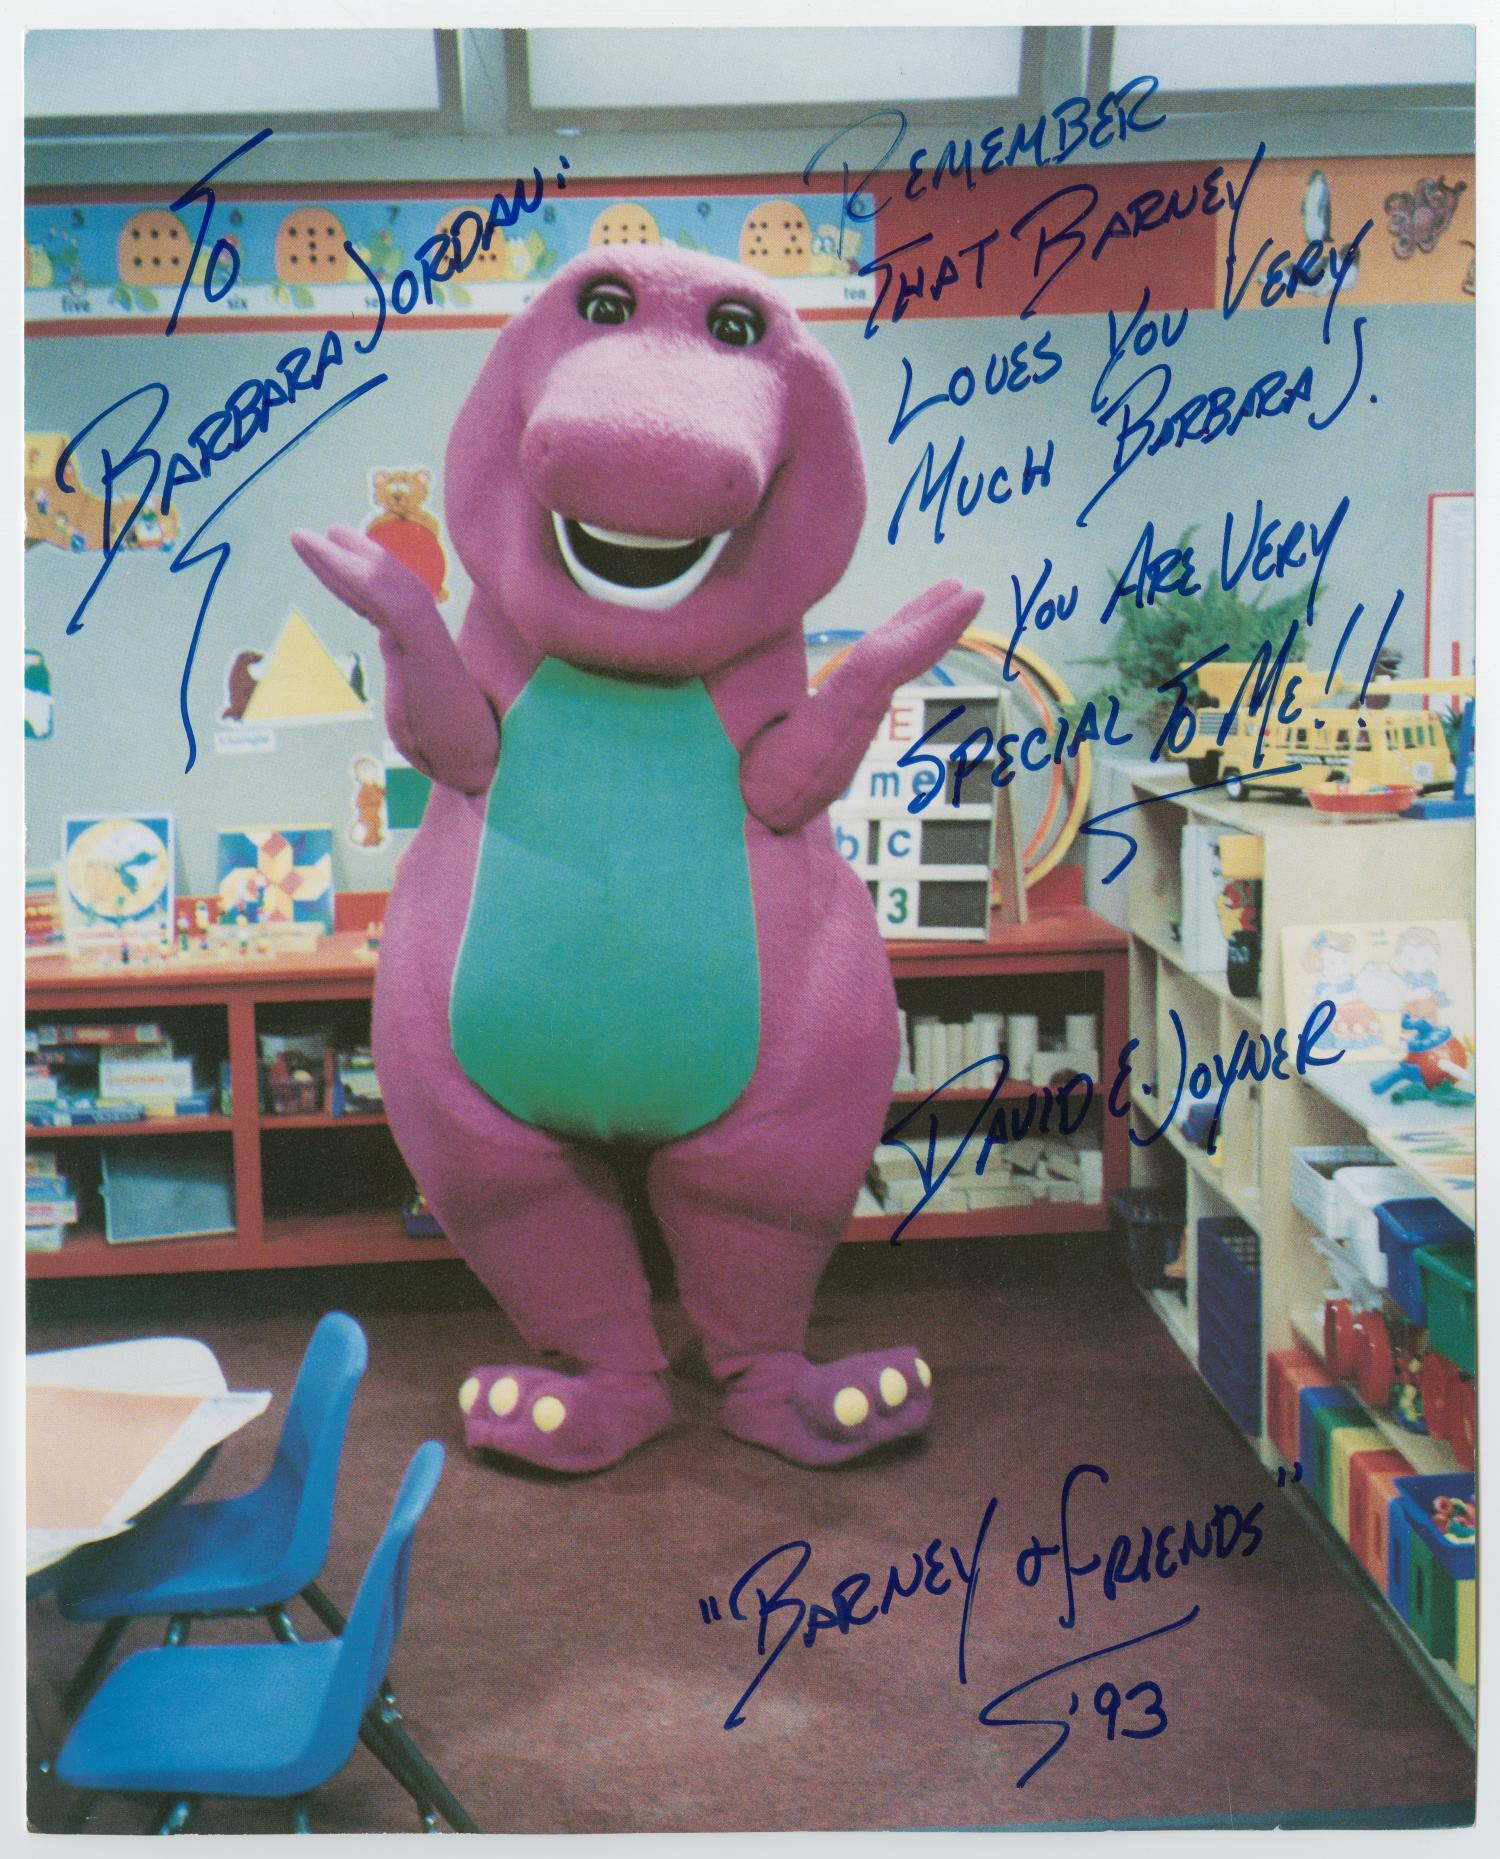 [Barney Poses in a Classroom]                                                                                                      [Sequence #]: 1 of 2